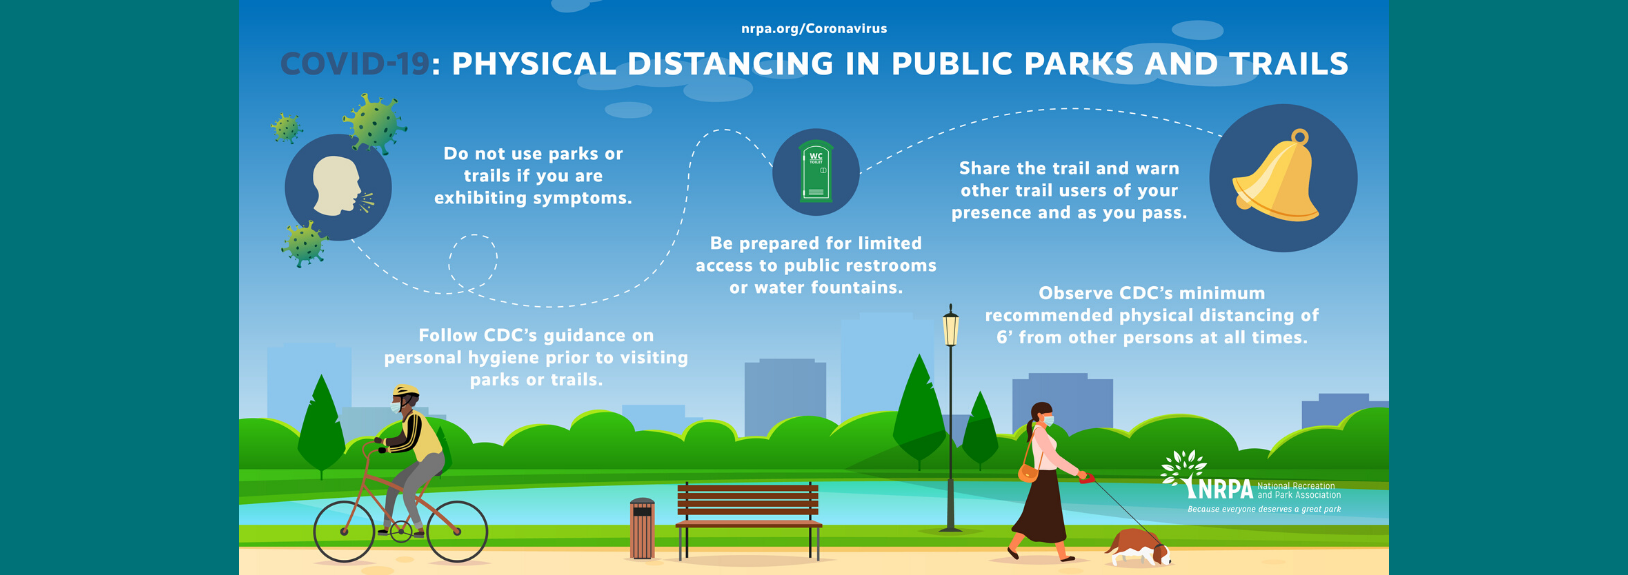 nrpa social distancing in parks - english